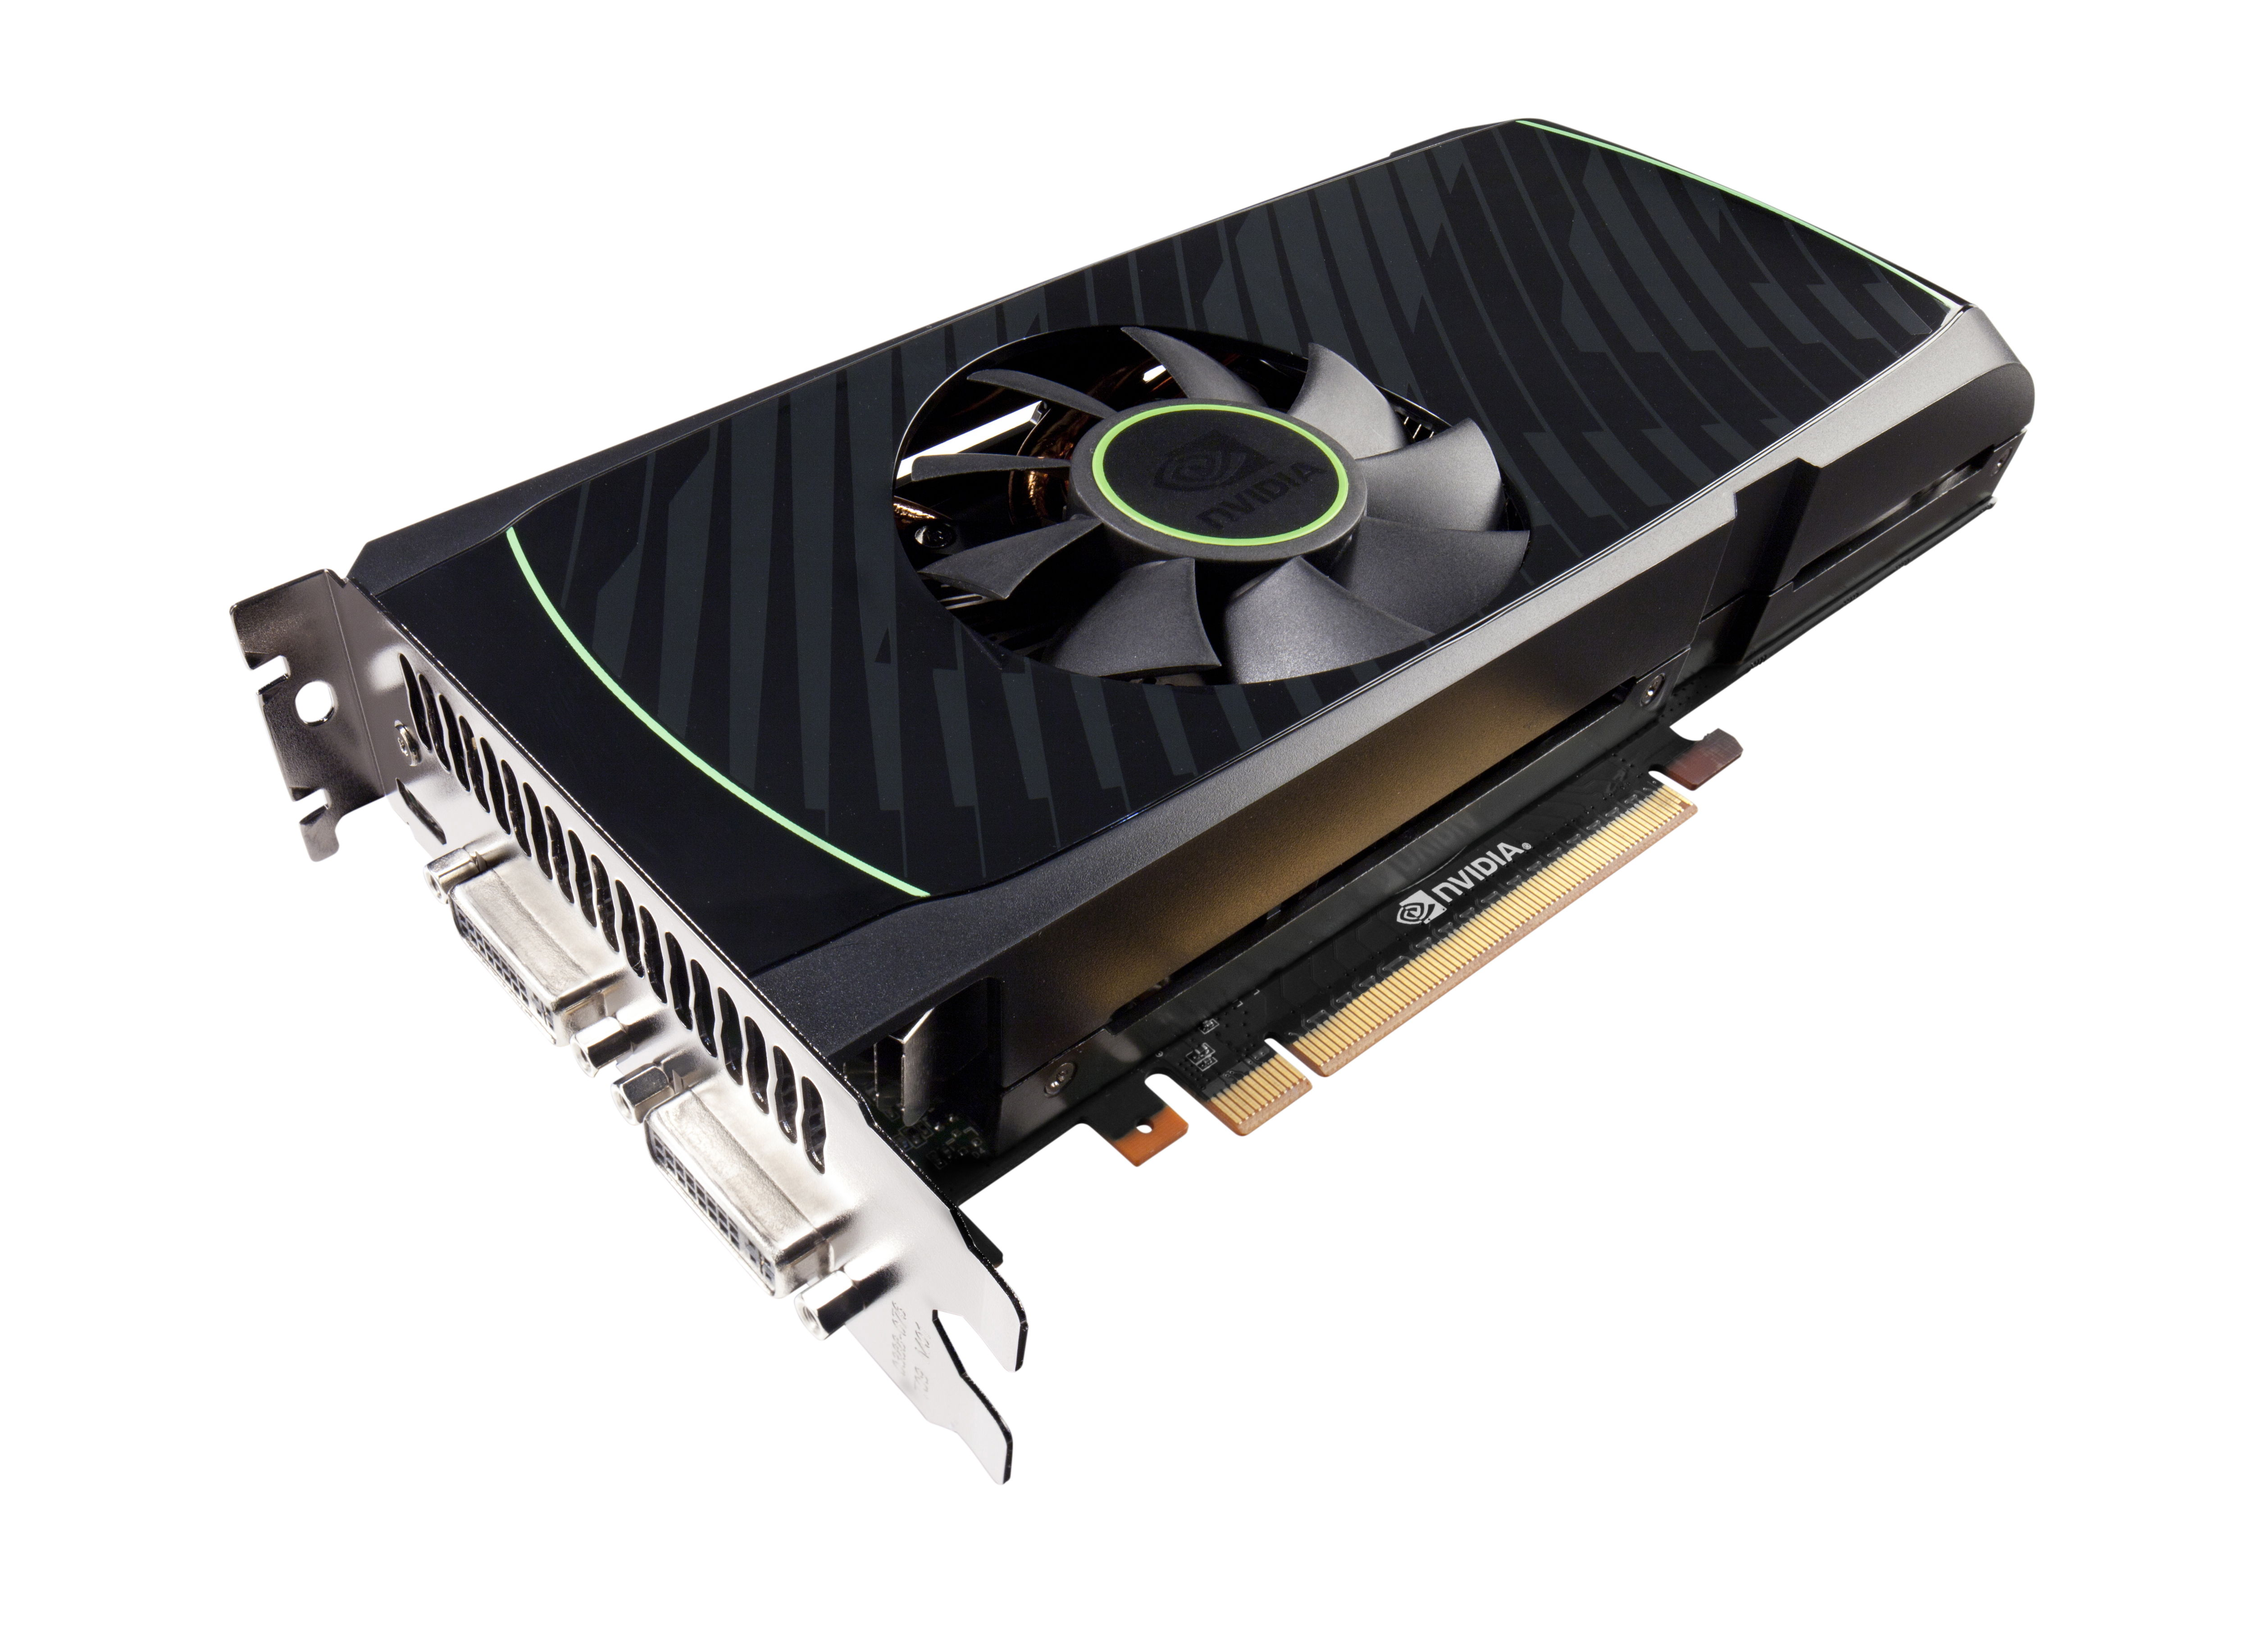 Video card Nvidia Geforce GTX 560 Ti: characteristics, comparison with analogues and reviews 29